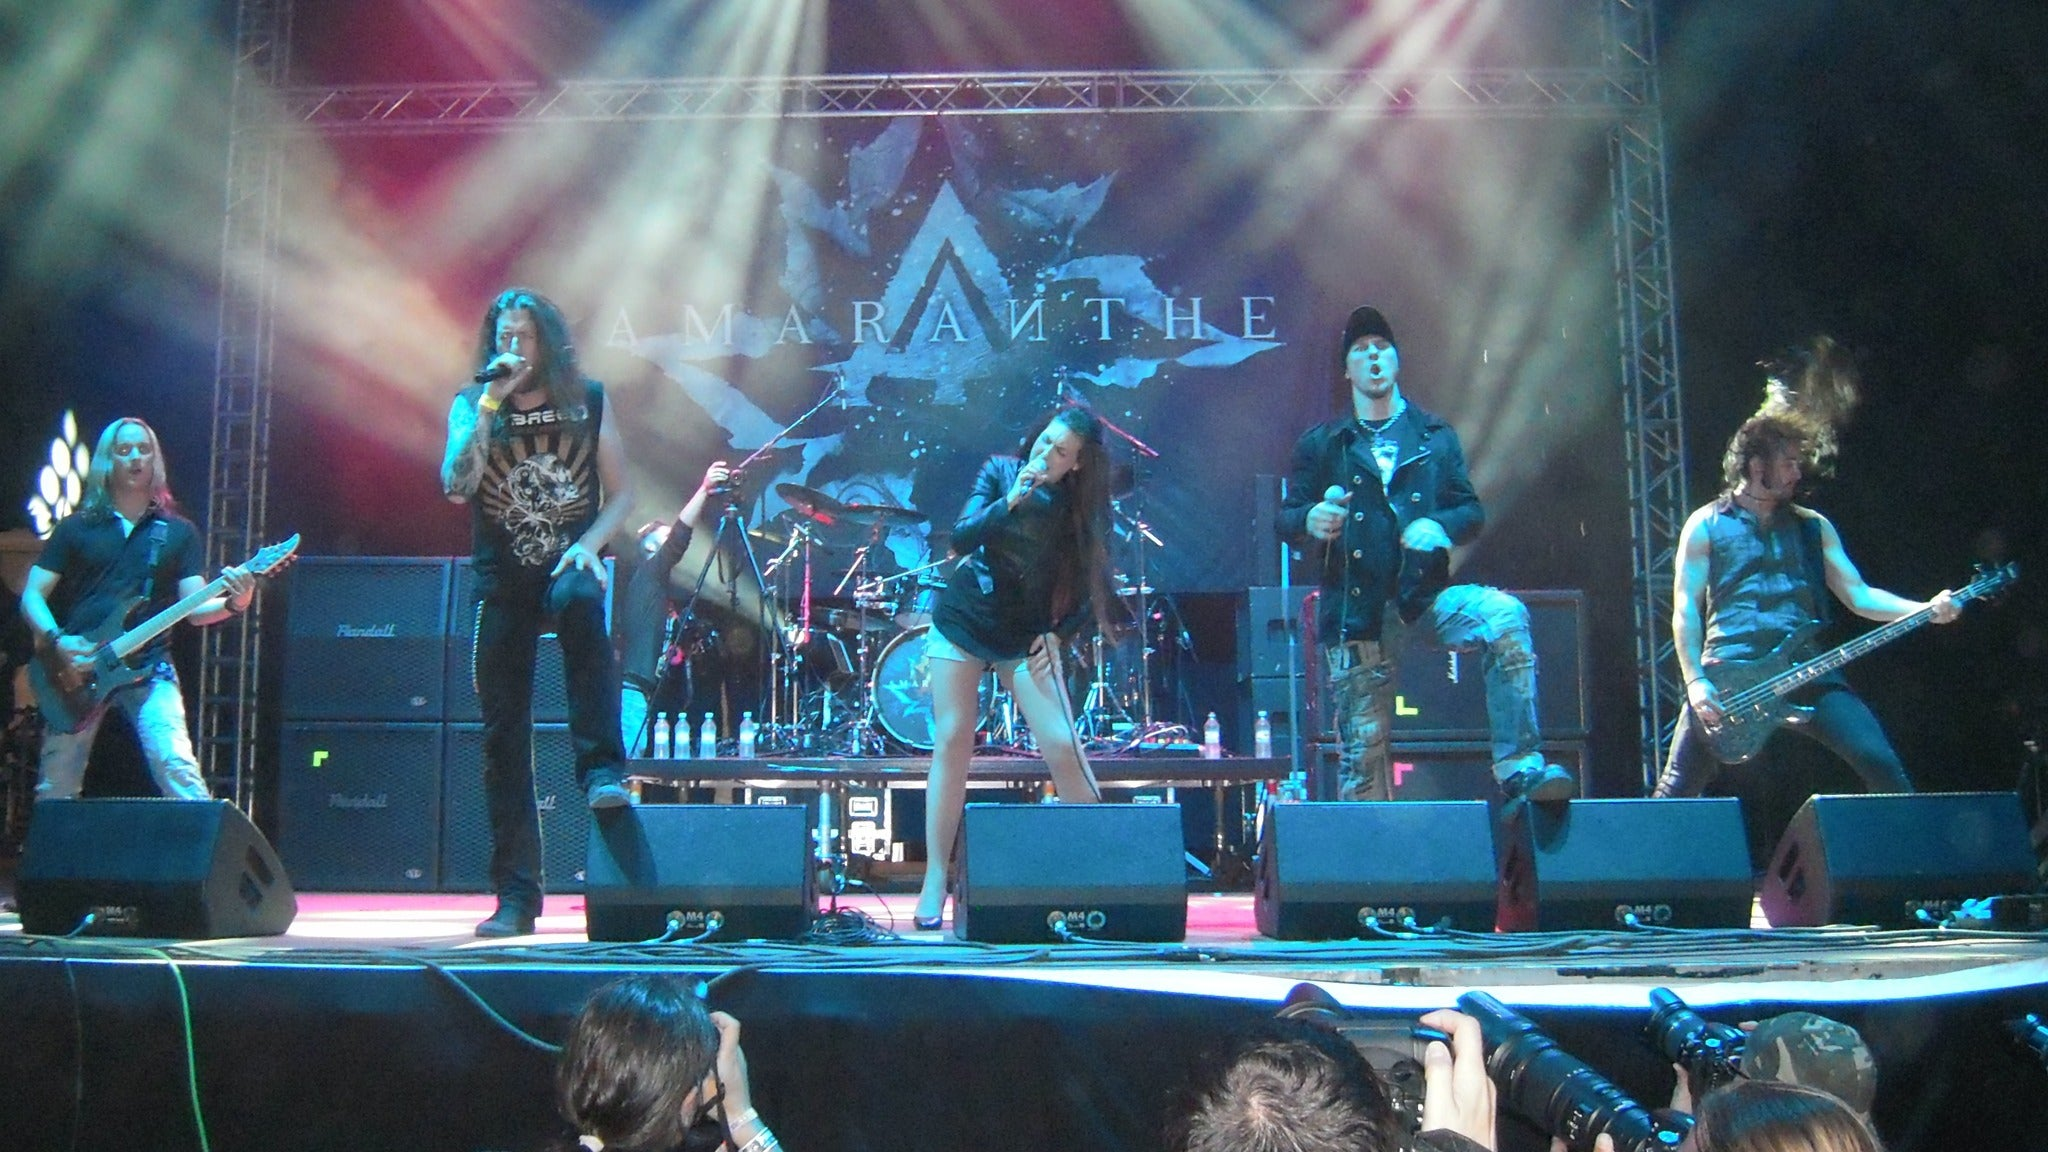 AMARANTHE at House of Independents